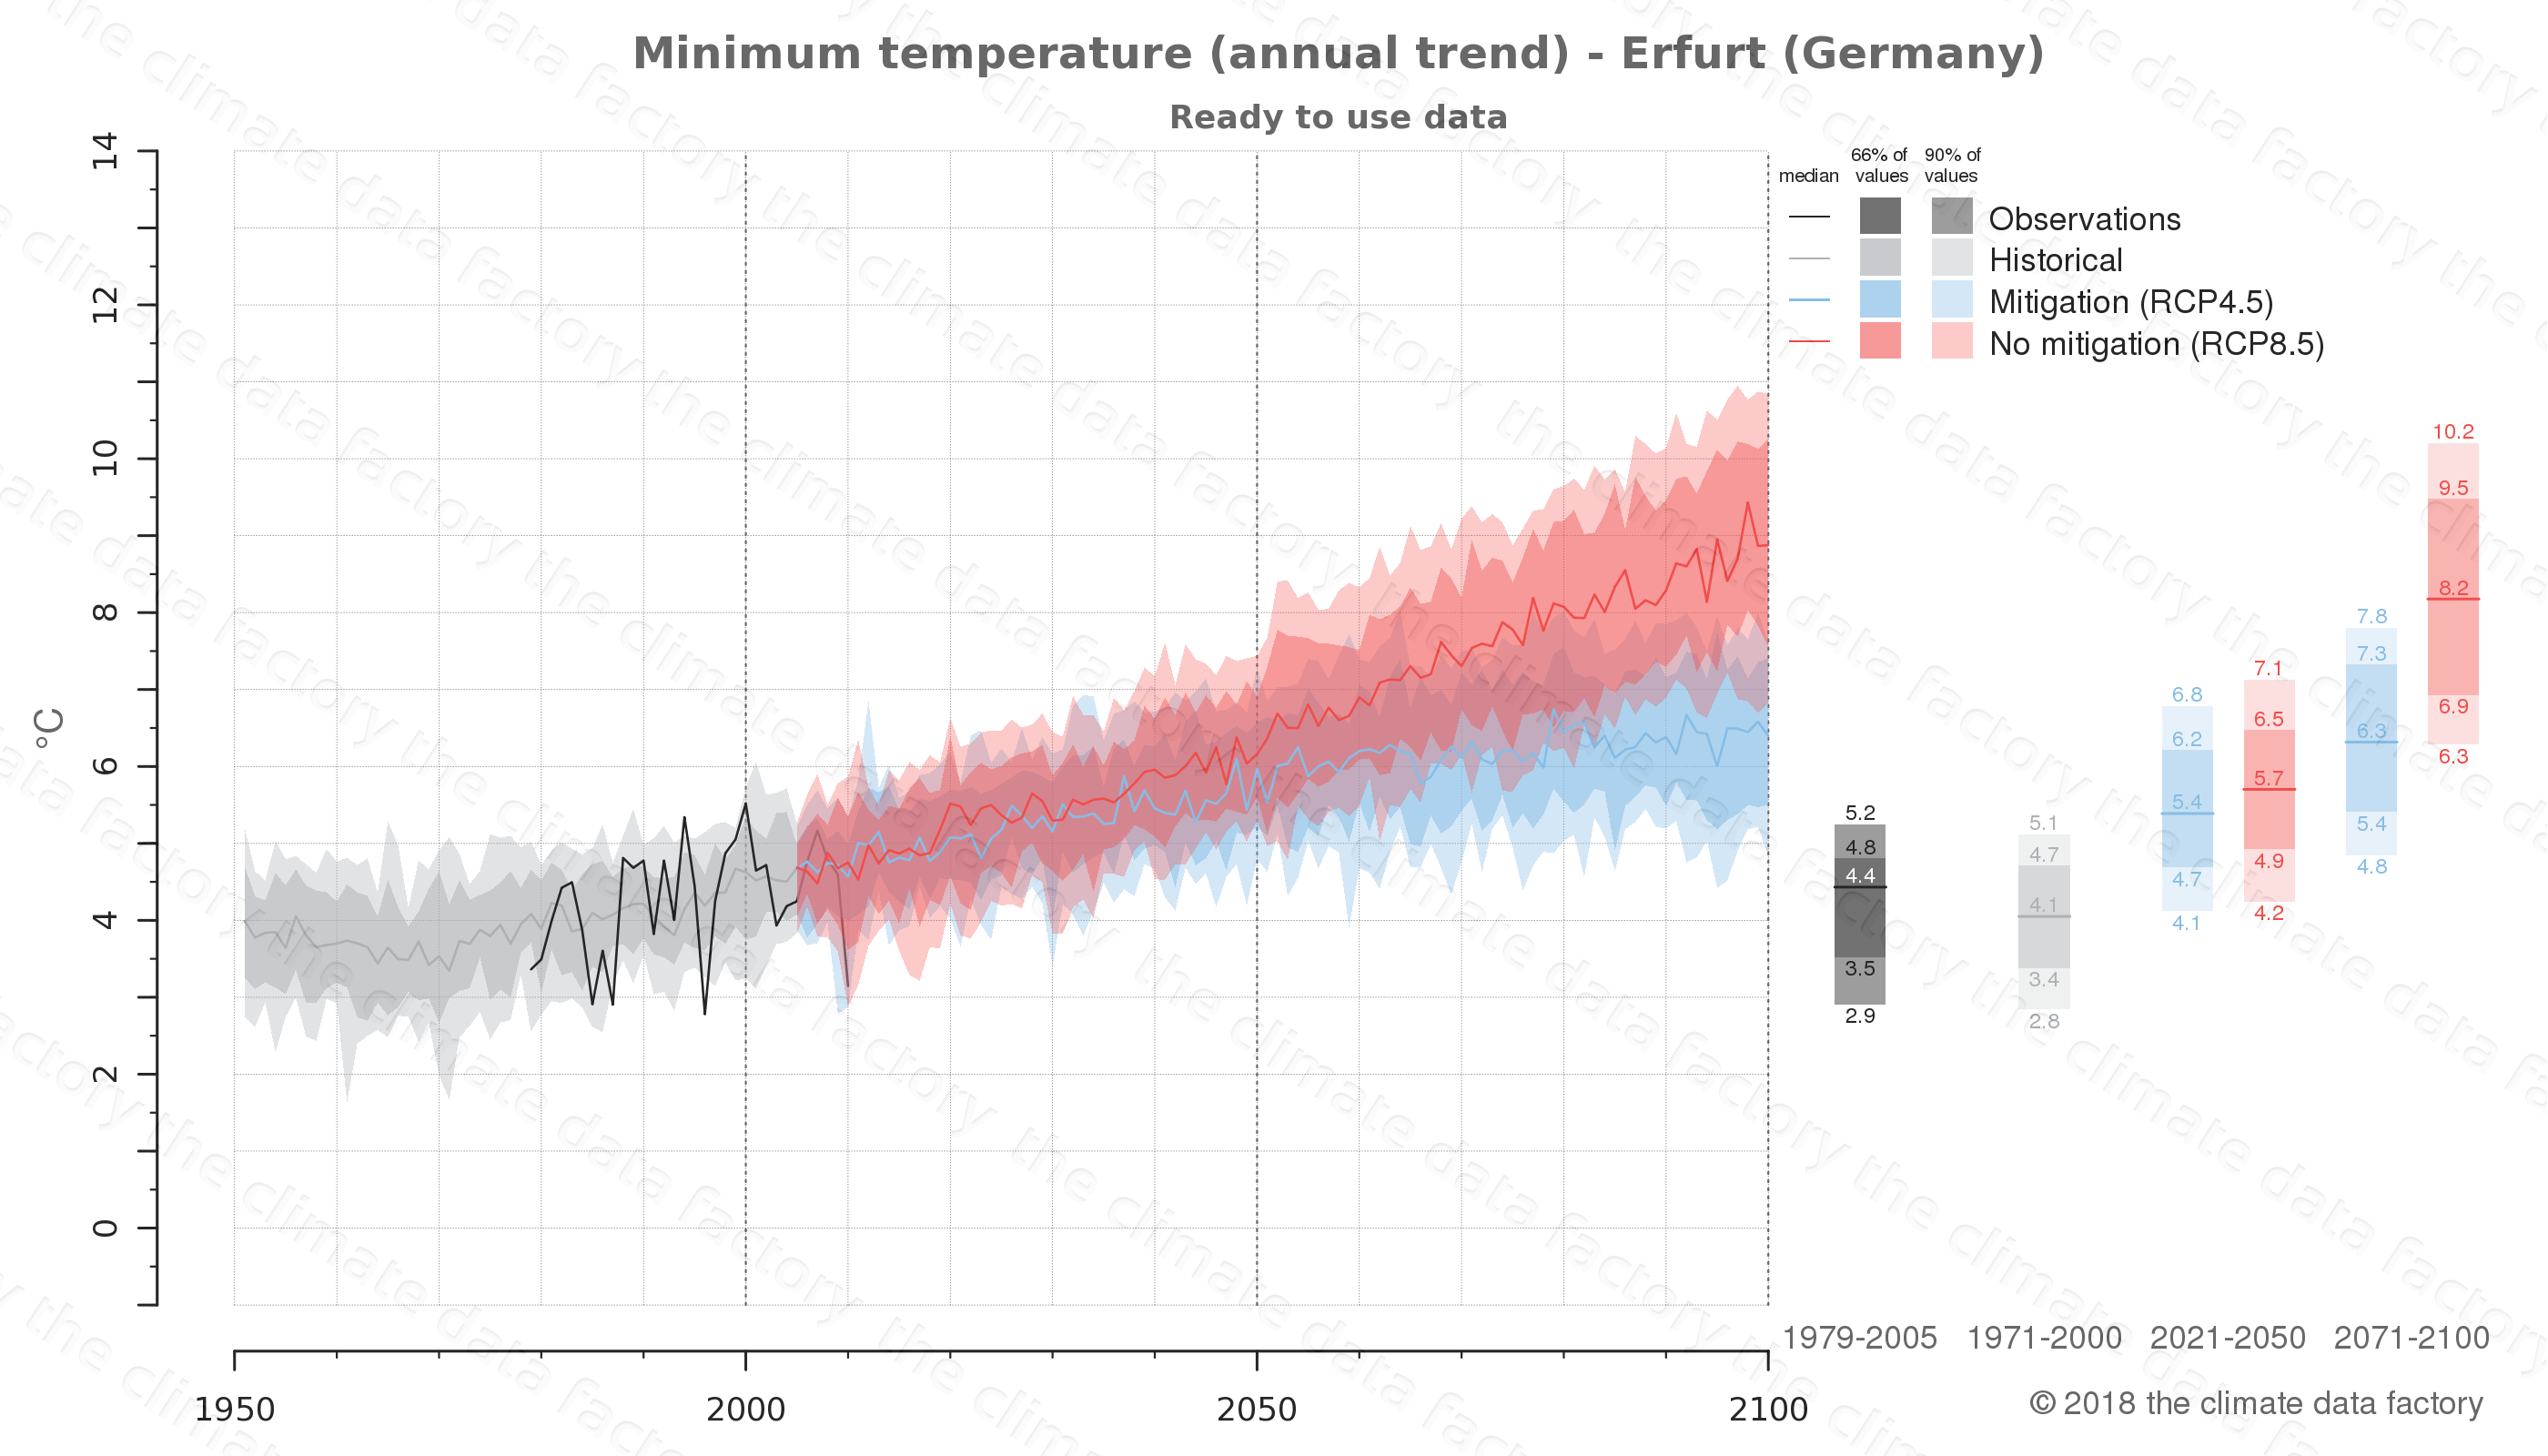 climate change data policy adaptation climate graph city data minimum-temperature erfurt germany